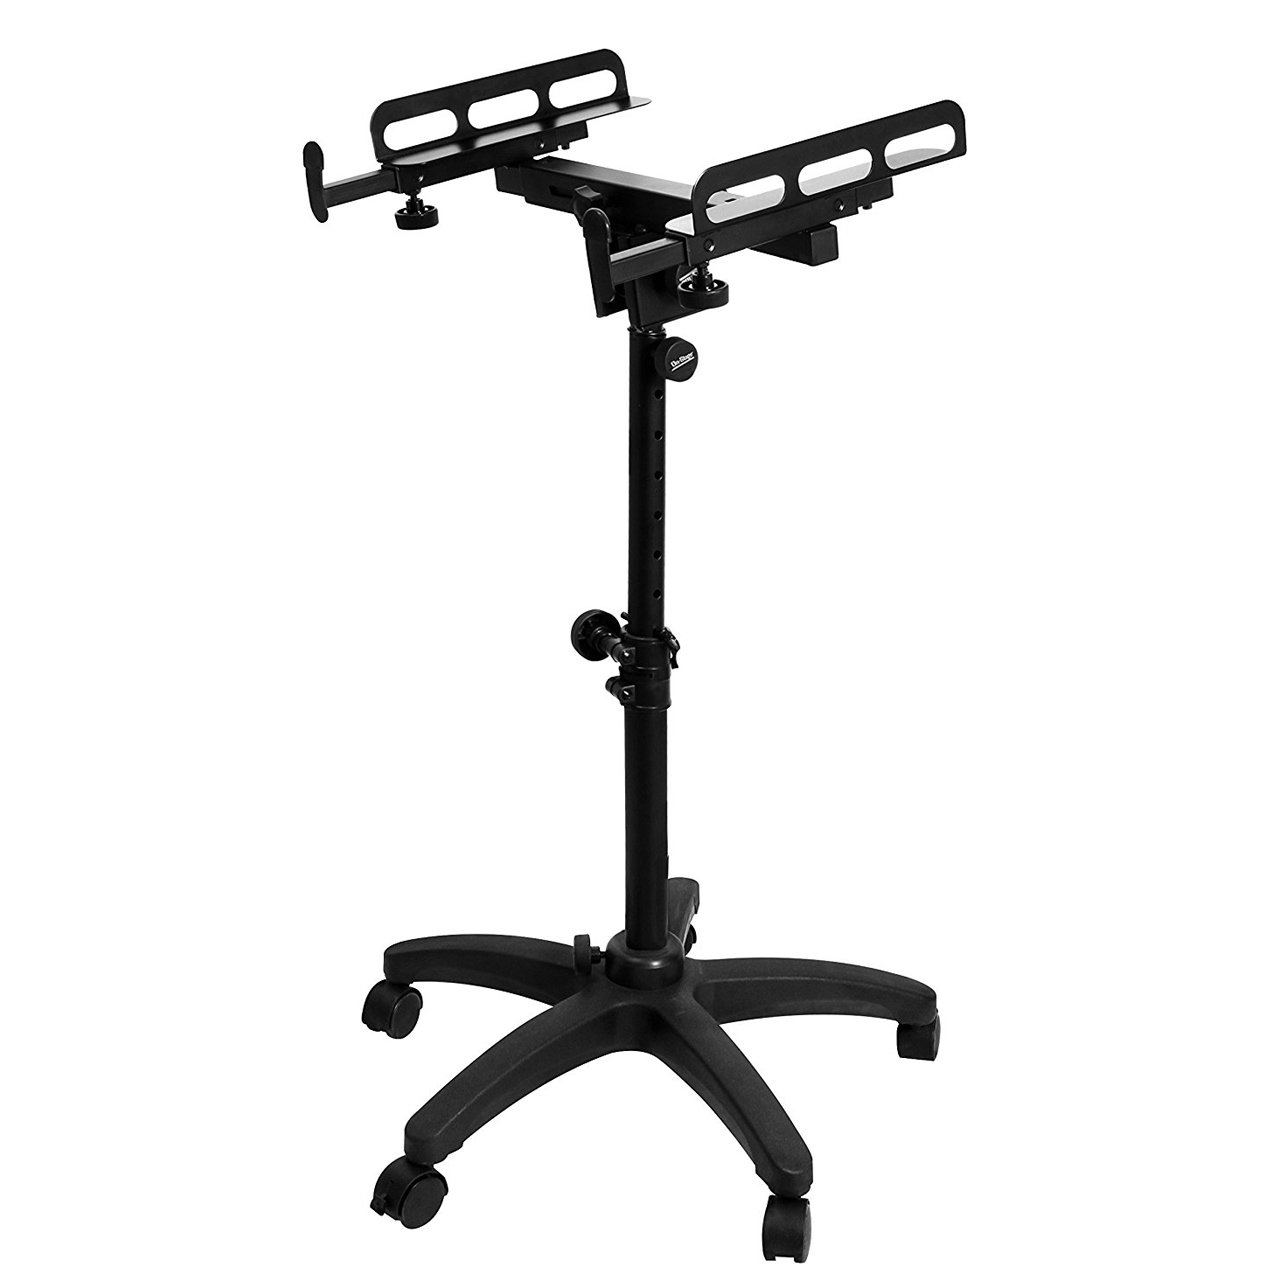 PA Accessories - On Stage Stands MIX-400 - Mobile Equipment Stand